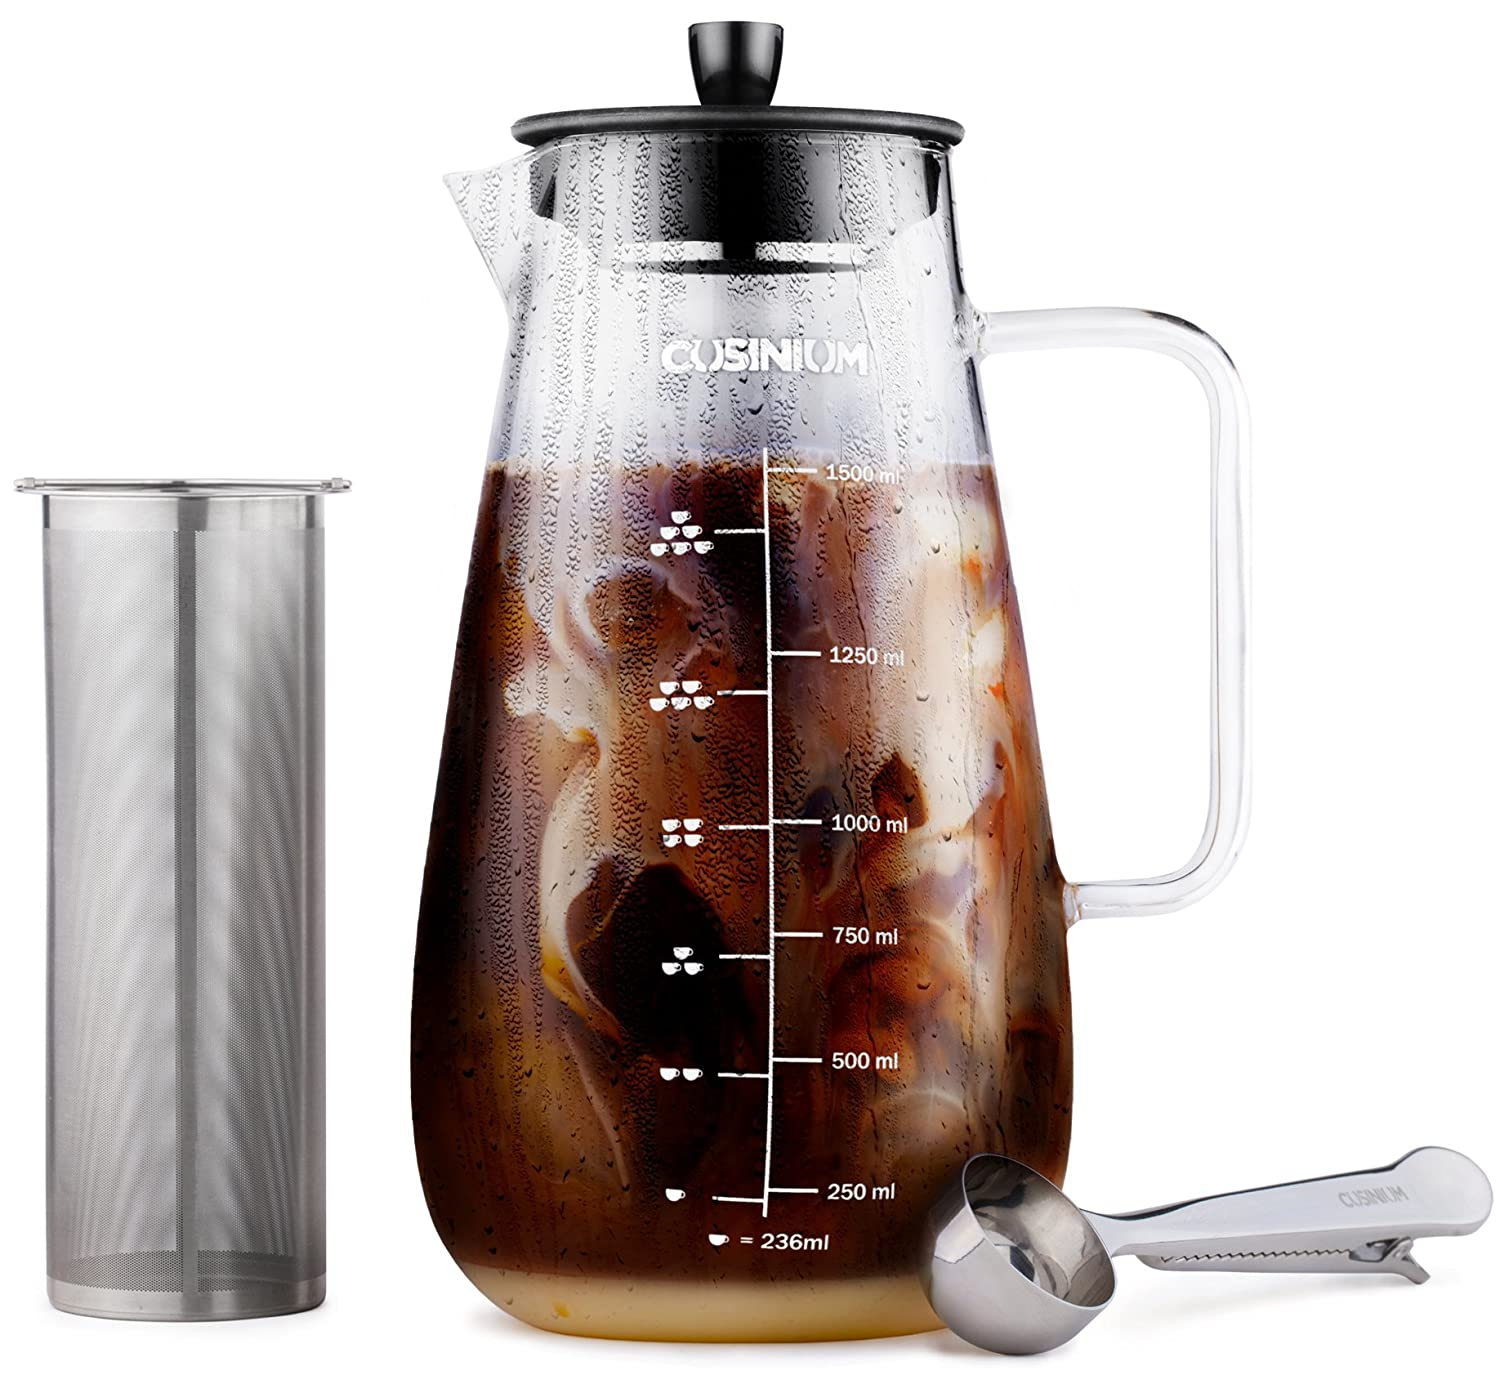 Cold Brew Iced Coffee Maker - 1 Quart Iced Brewed Tea Maker - Glass Coffee Carafe - Fruit infuser pitcher - Includes Scoop & Clip Spoon CUSINIUM A100011000